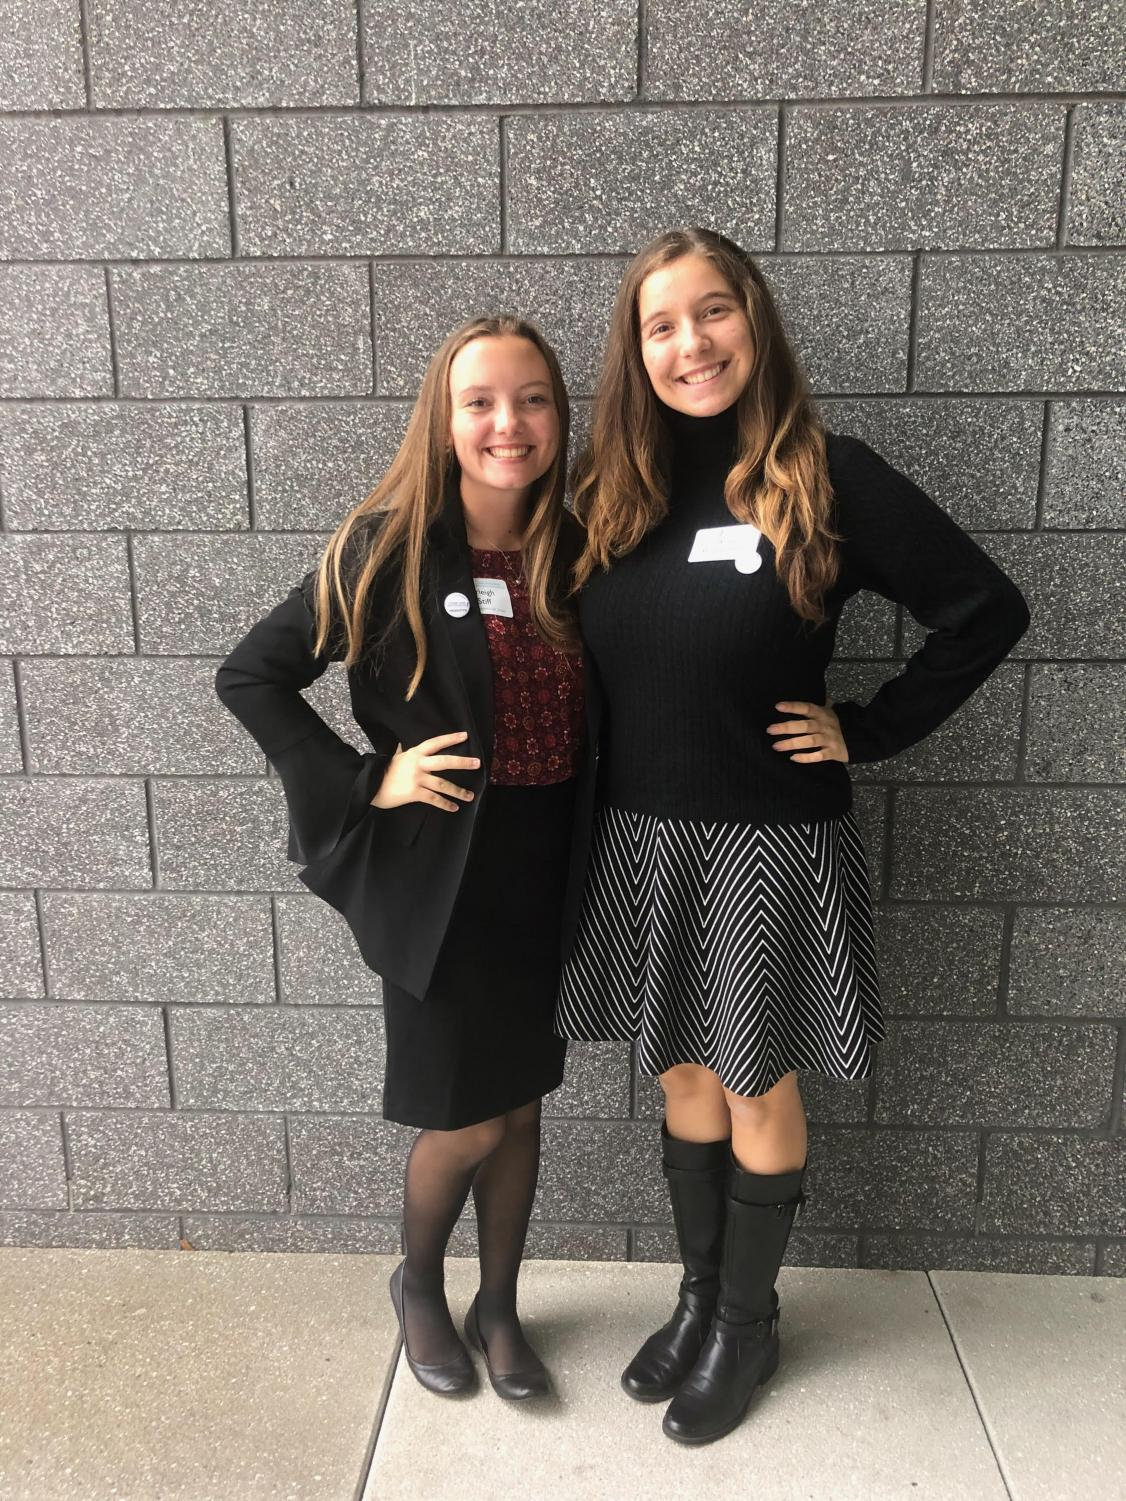 Arleigh Stiff (left) and Anna Bustamante (right) are two of the several peer tutors who attended the 2018 SSWCA conference, where they exchanged tutoring tips with tutors across the nation.